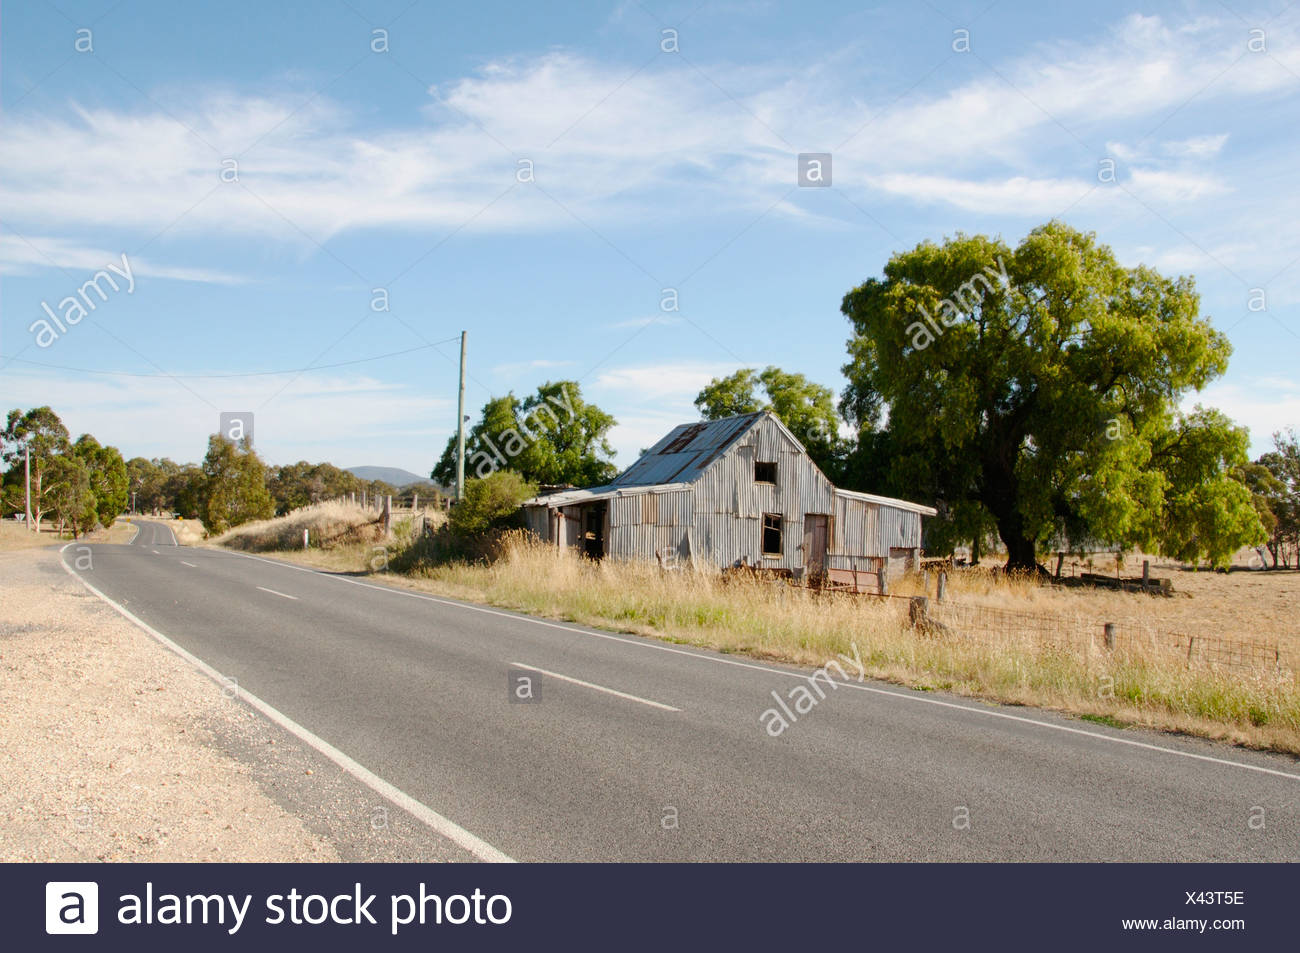 Australia, Central Victoria, Campletown, View of shed on roadside - Stock Image